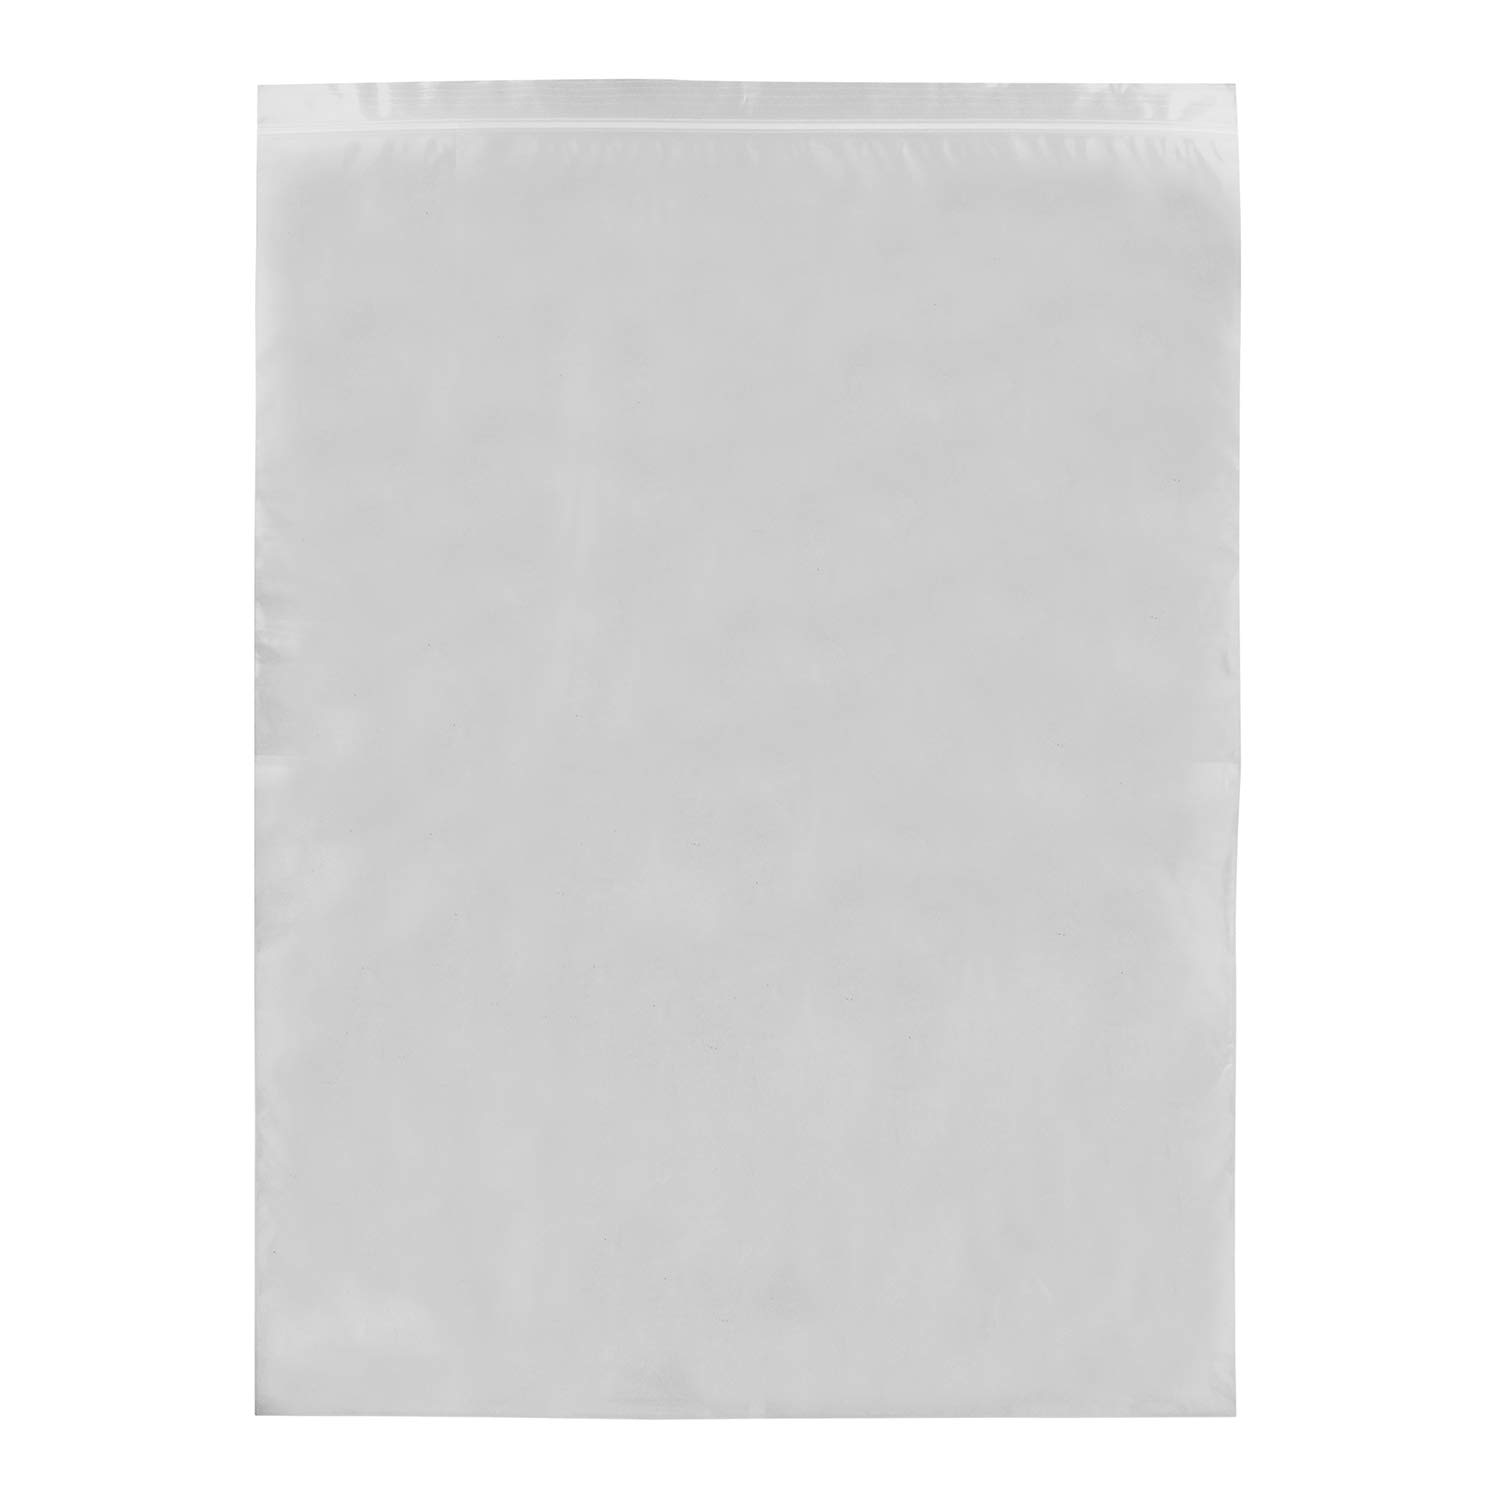 BISupply Clear Plastic Bags, 500 Count - Reclosable Packaging Bulk Resealable Package Zip Poly Bag - 13in by 18in